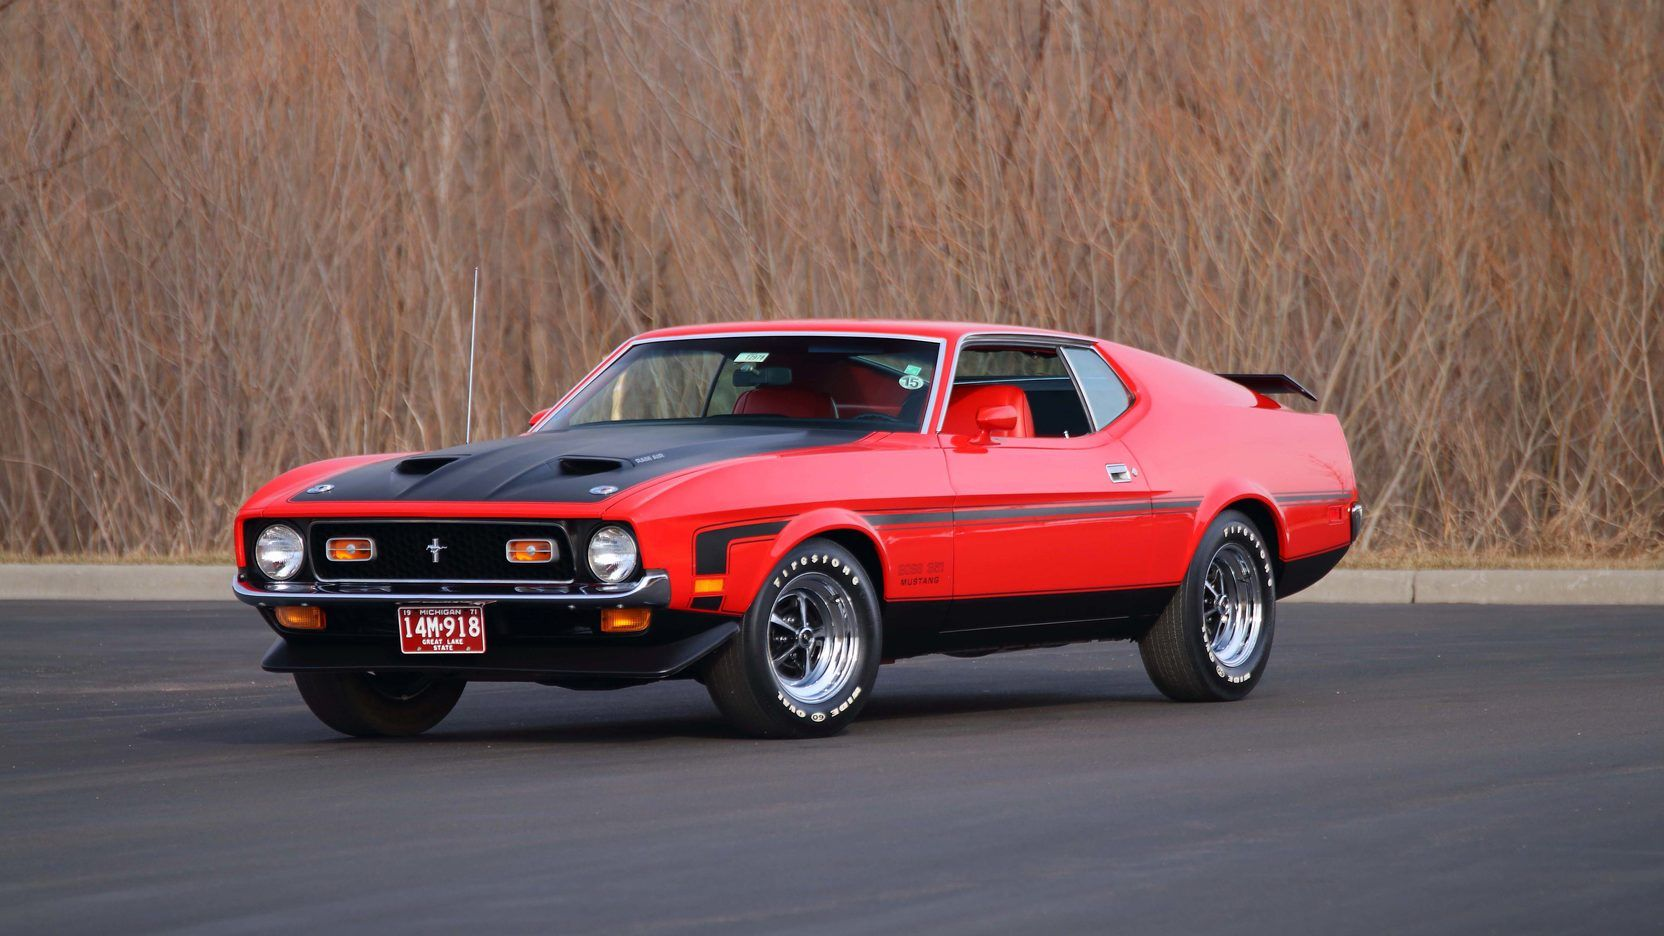 1971 Ford Mustang Boss 351 Fastback 1 Print Image Ford Mustang Boss 1971 Ford Mustang Ford Mustang